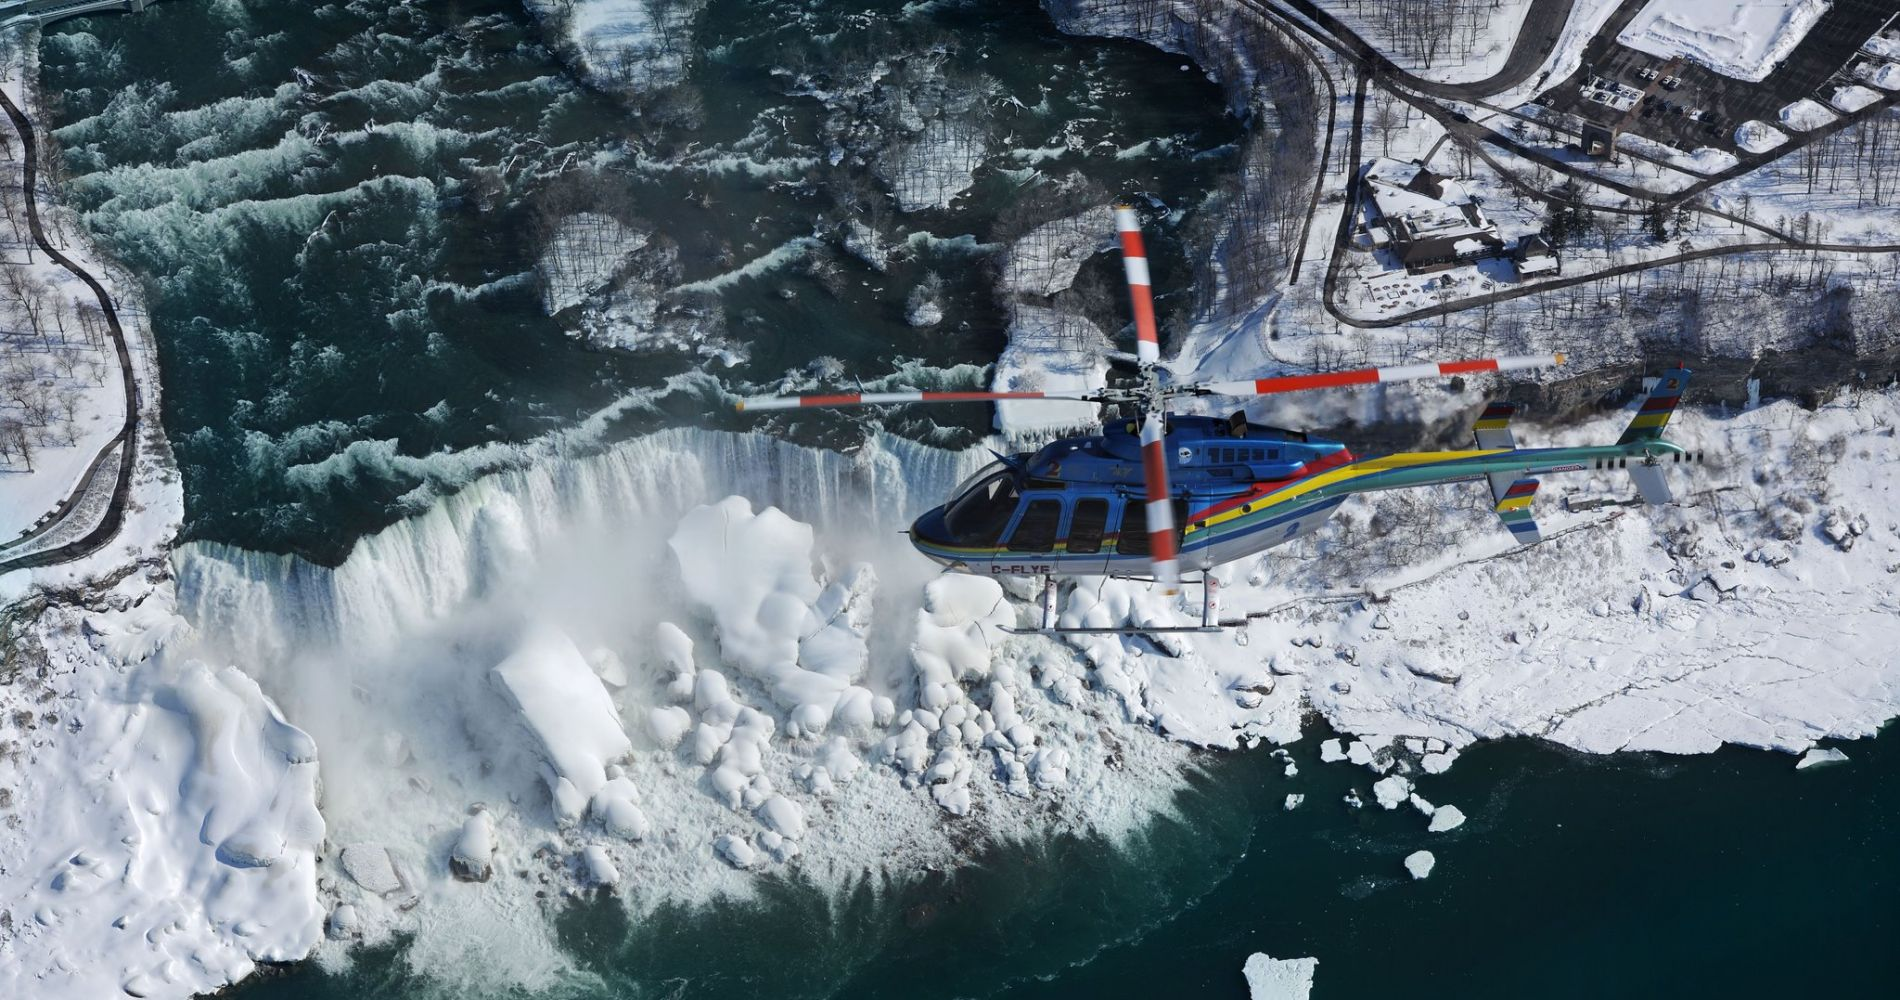 Helicopter flight over Niagara Falls in Canada